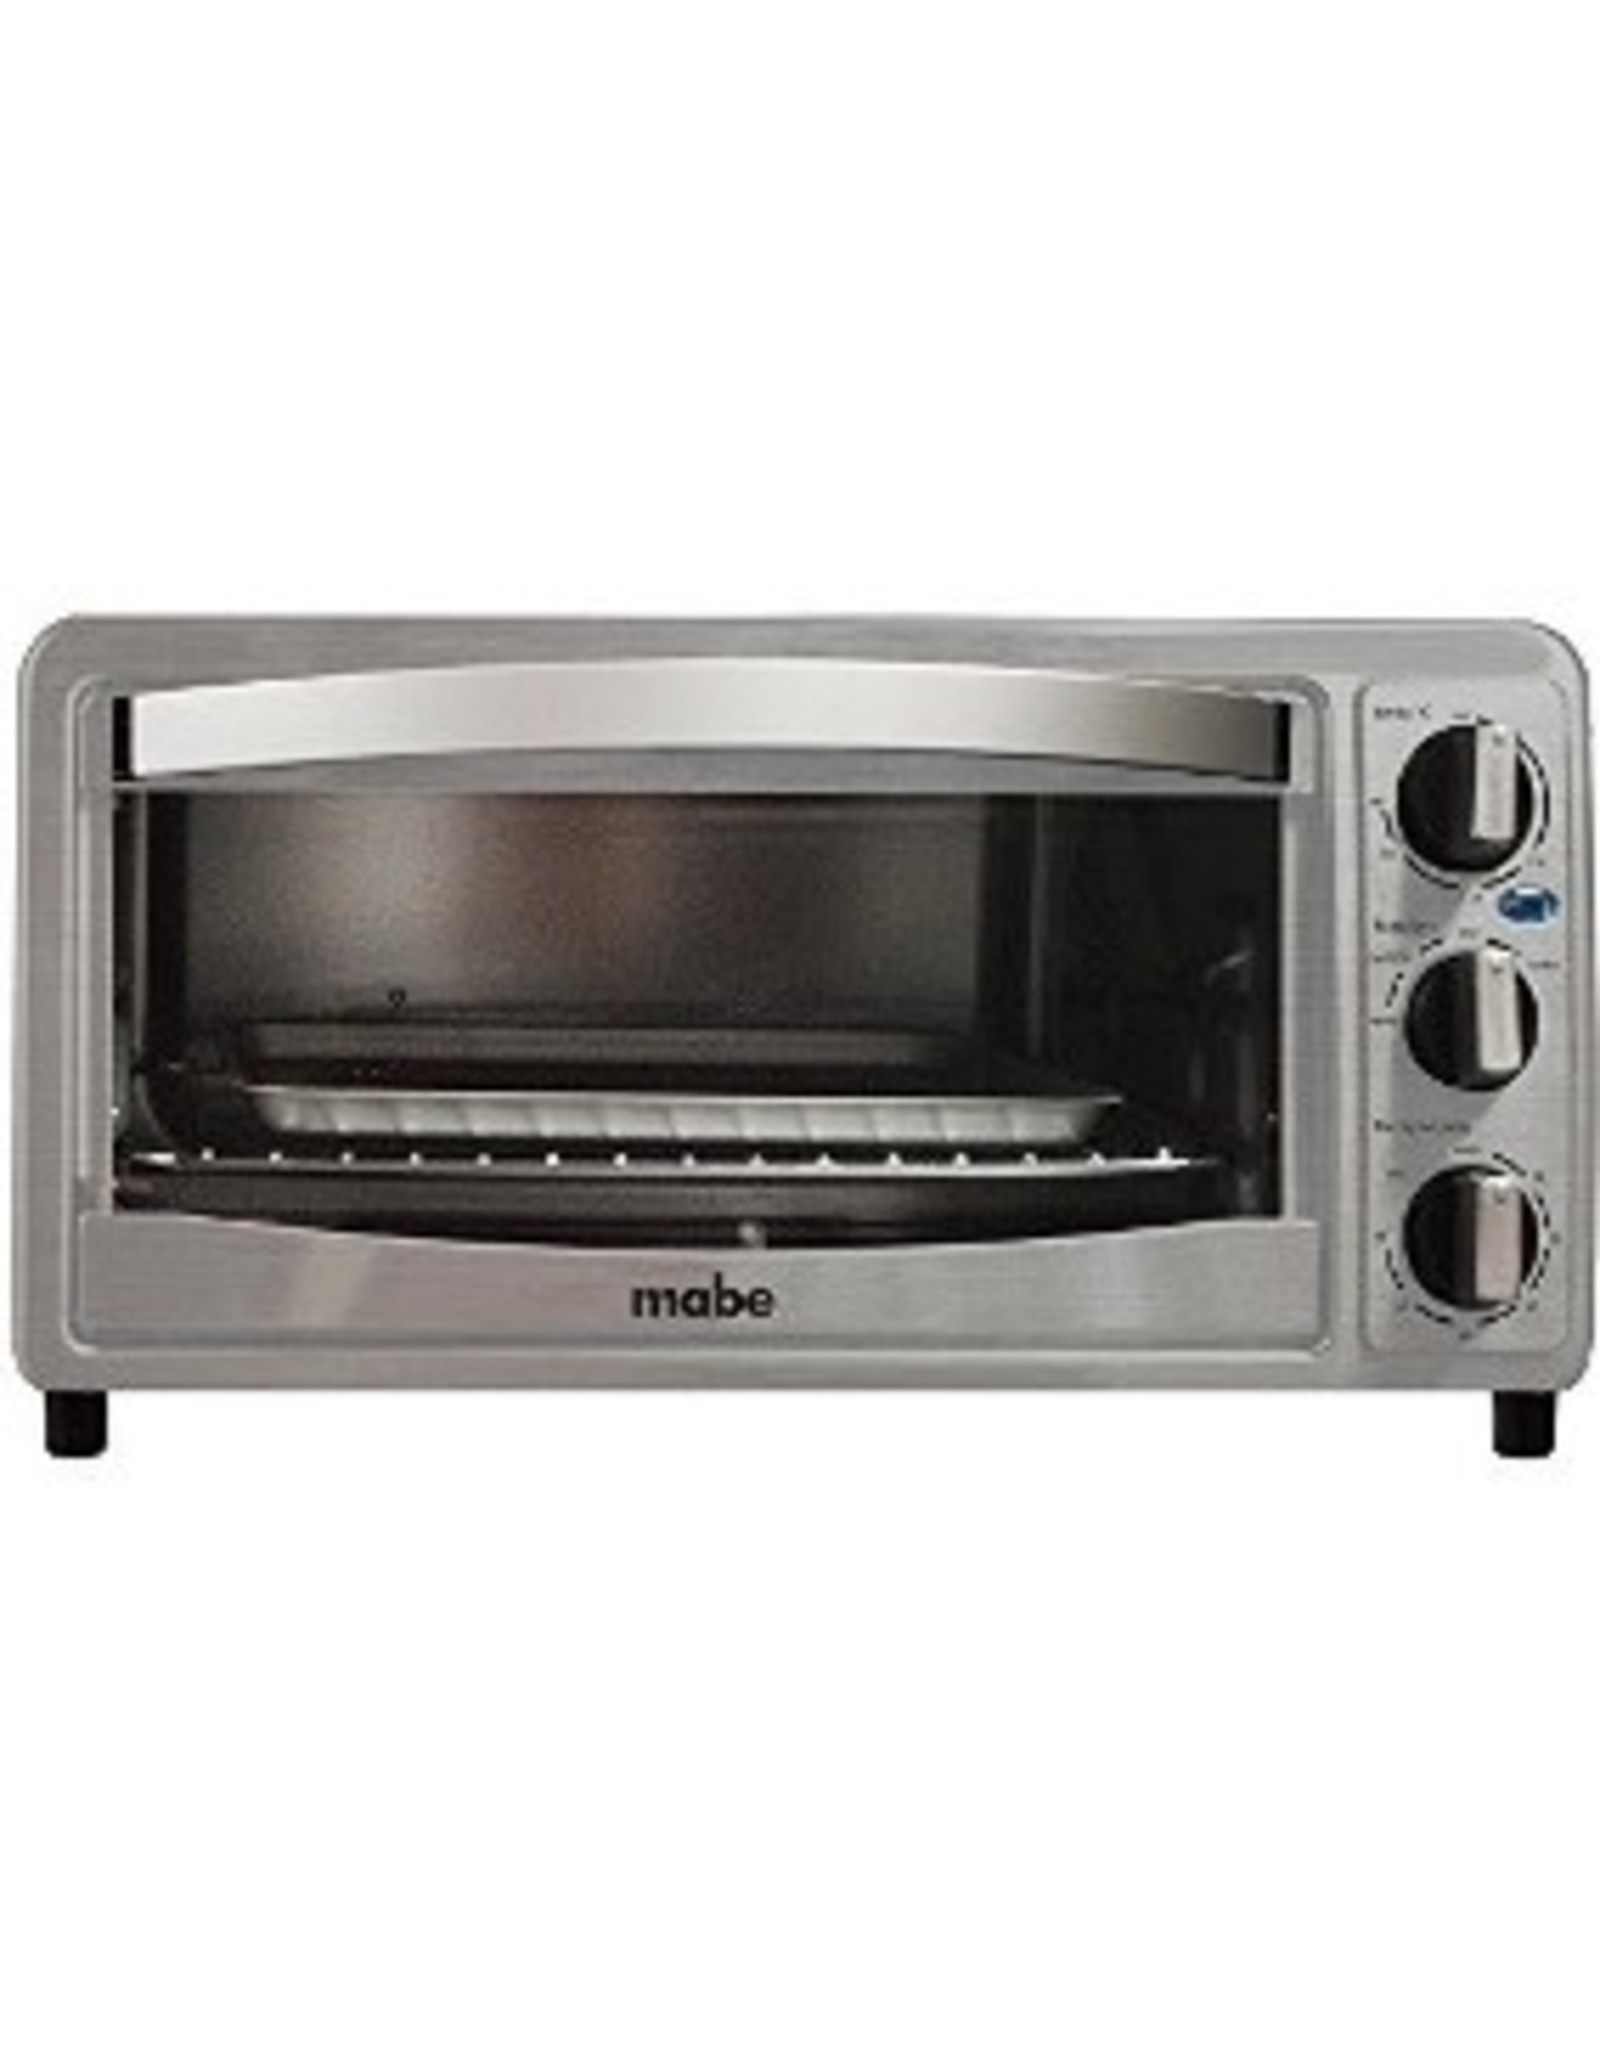 Mabe Mabe Toaster Oven 15 LTS S/Steel HTM15SS